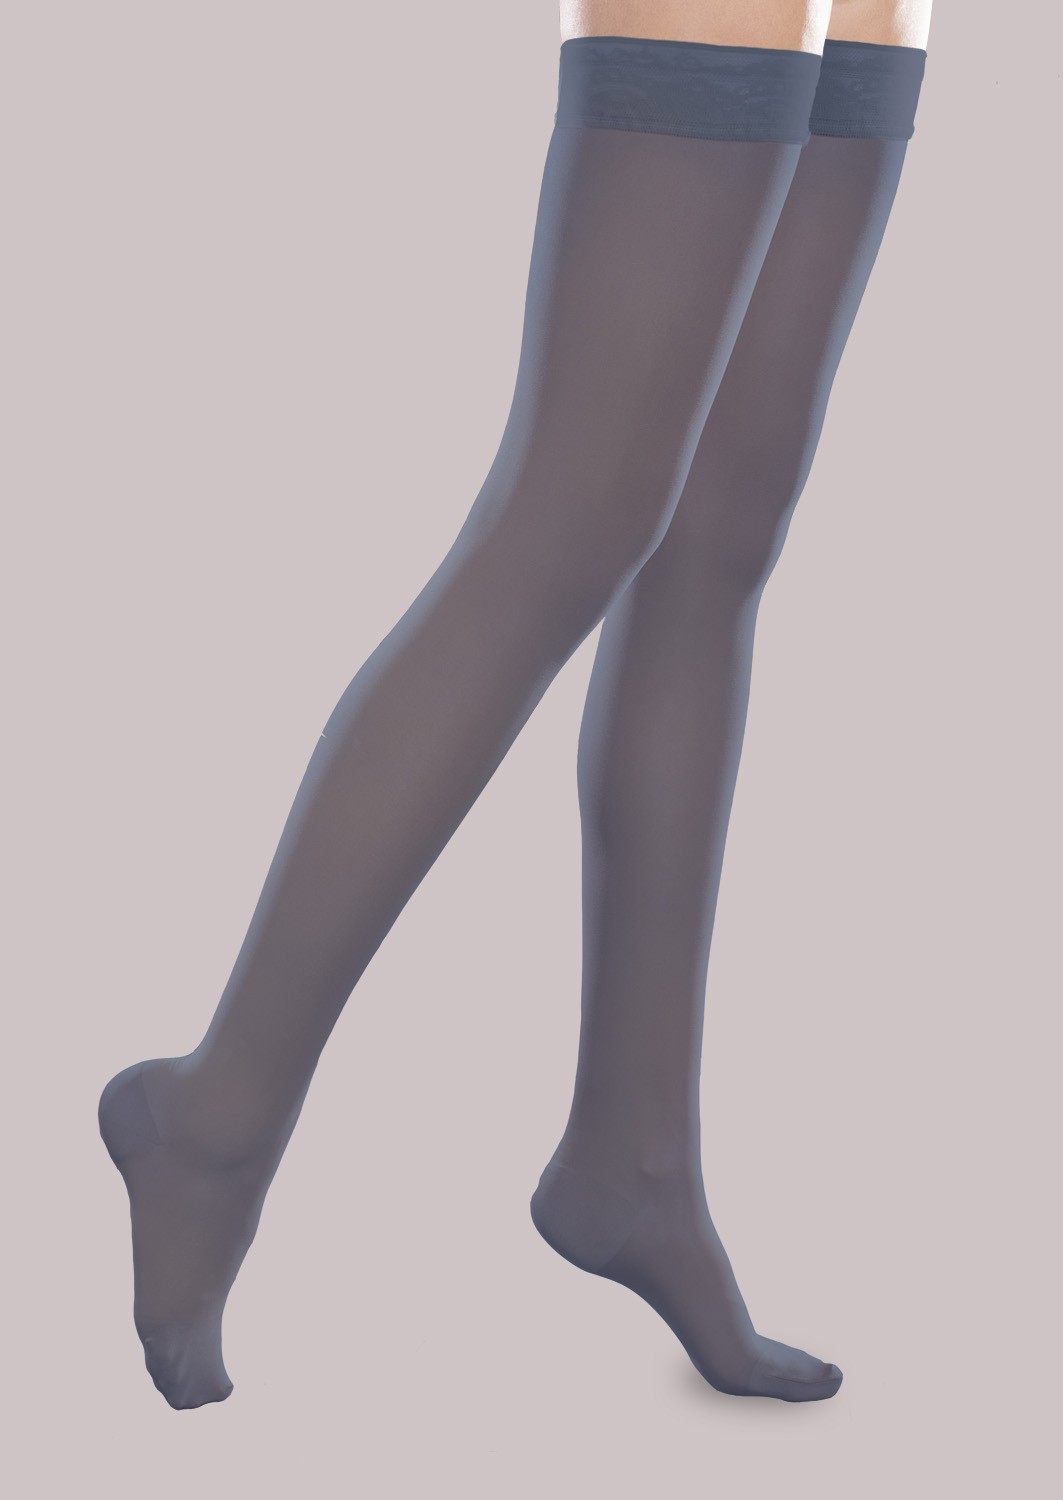 ee9af4c7a1c Sheer Ease Women s Mild Support Thigh High (15-20 mmHg)